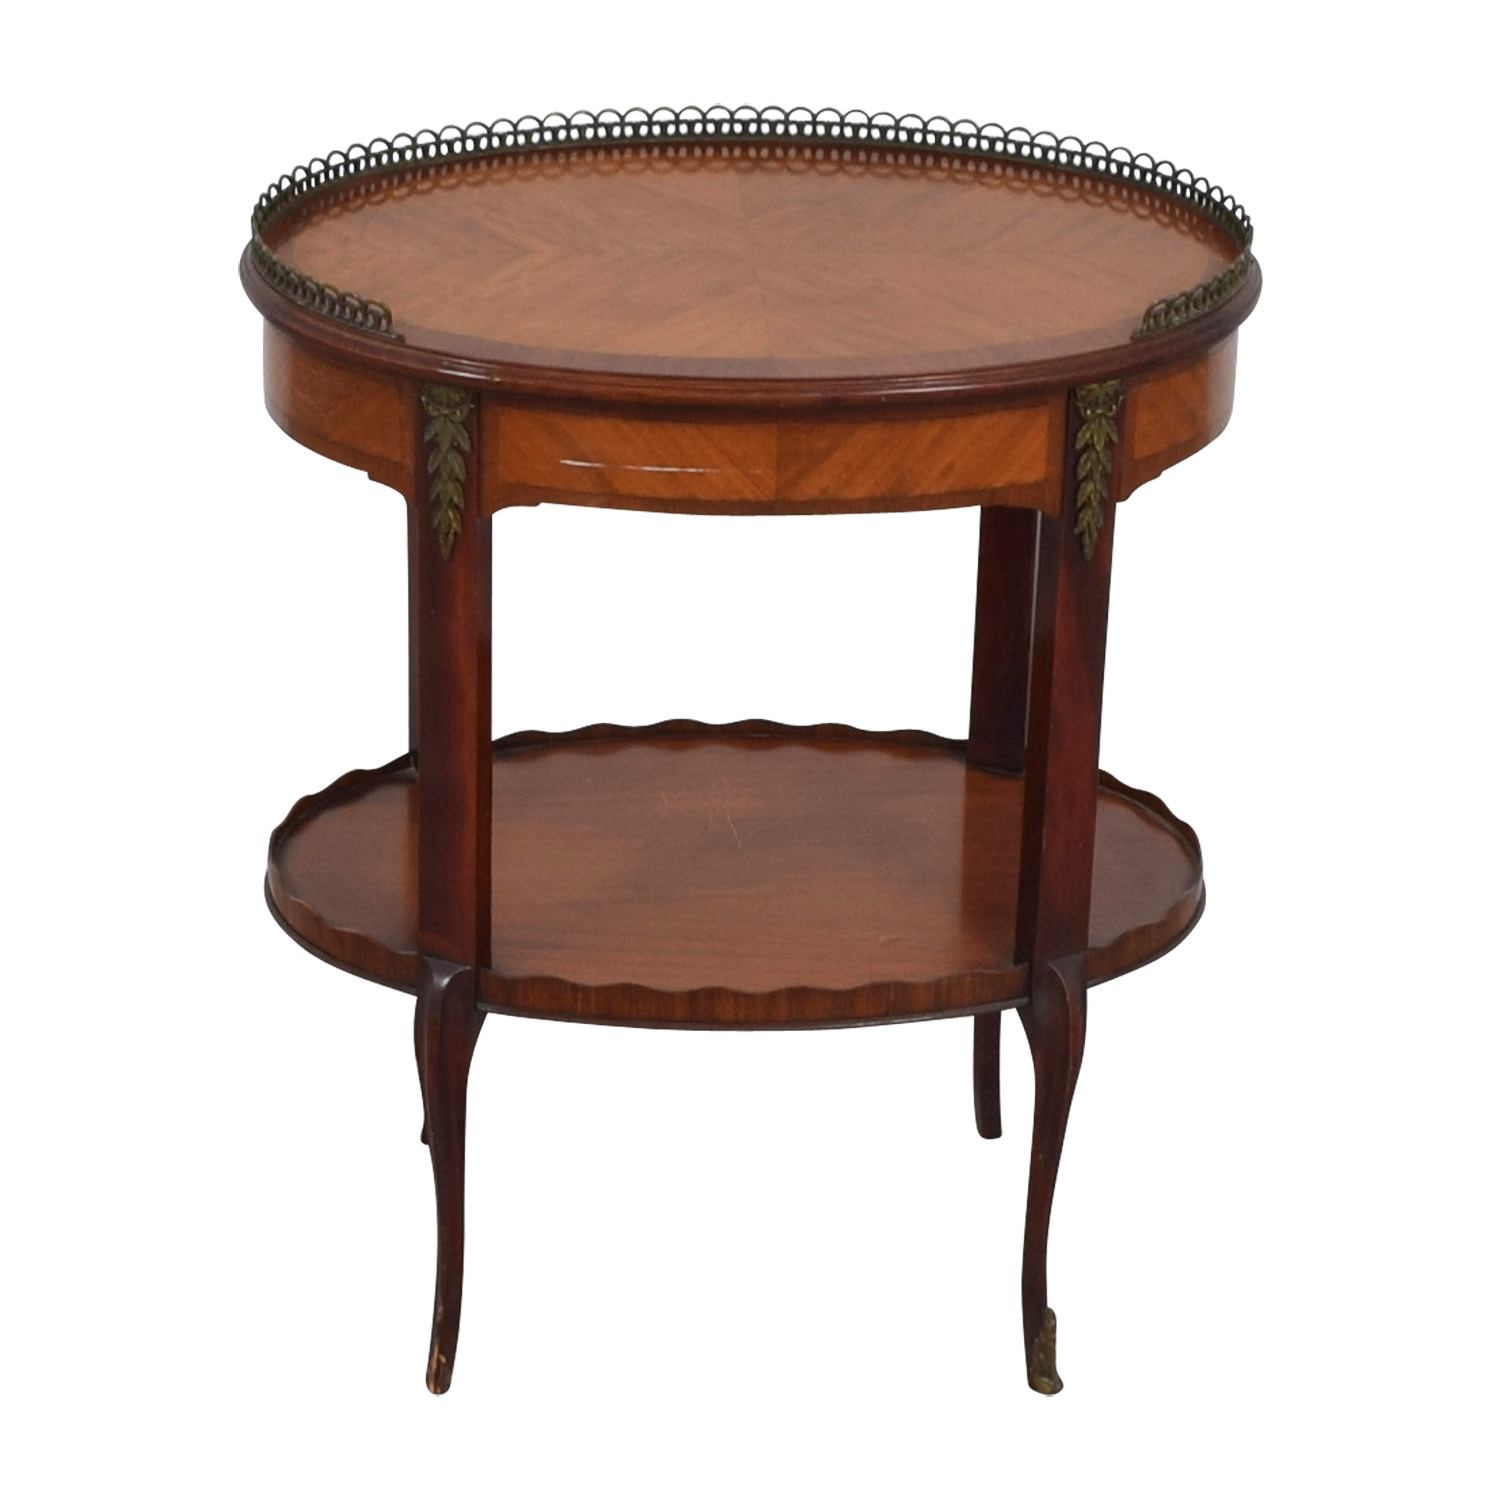 buy Furniture Masters Furniture Masters Oval End Table with Scalloped and Brass Edges online